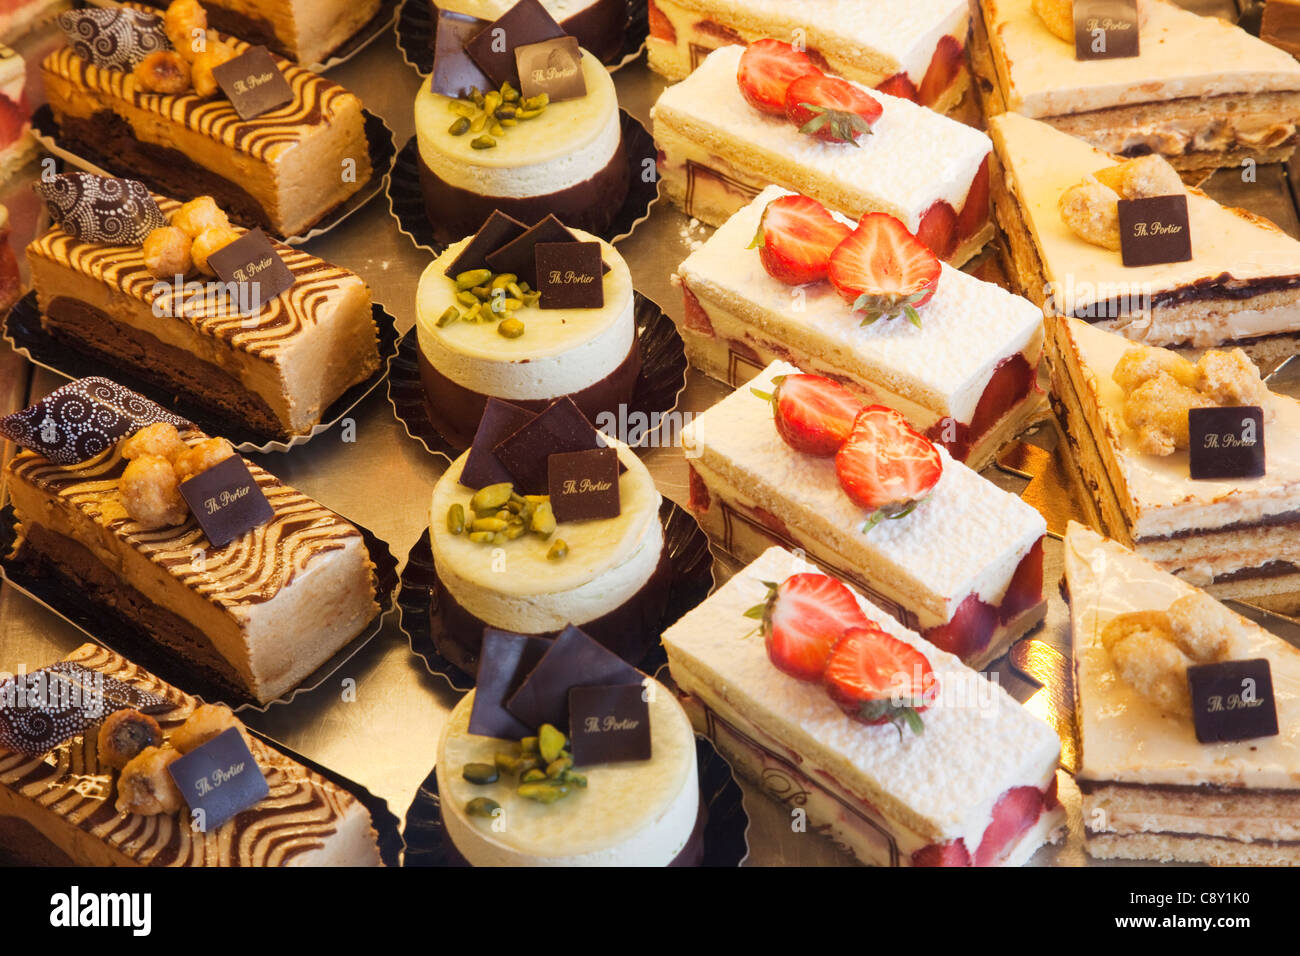 Patisserie Cake Shop